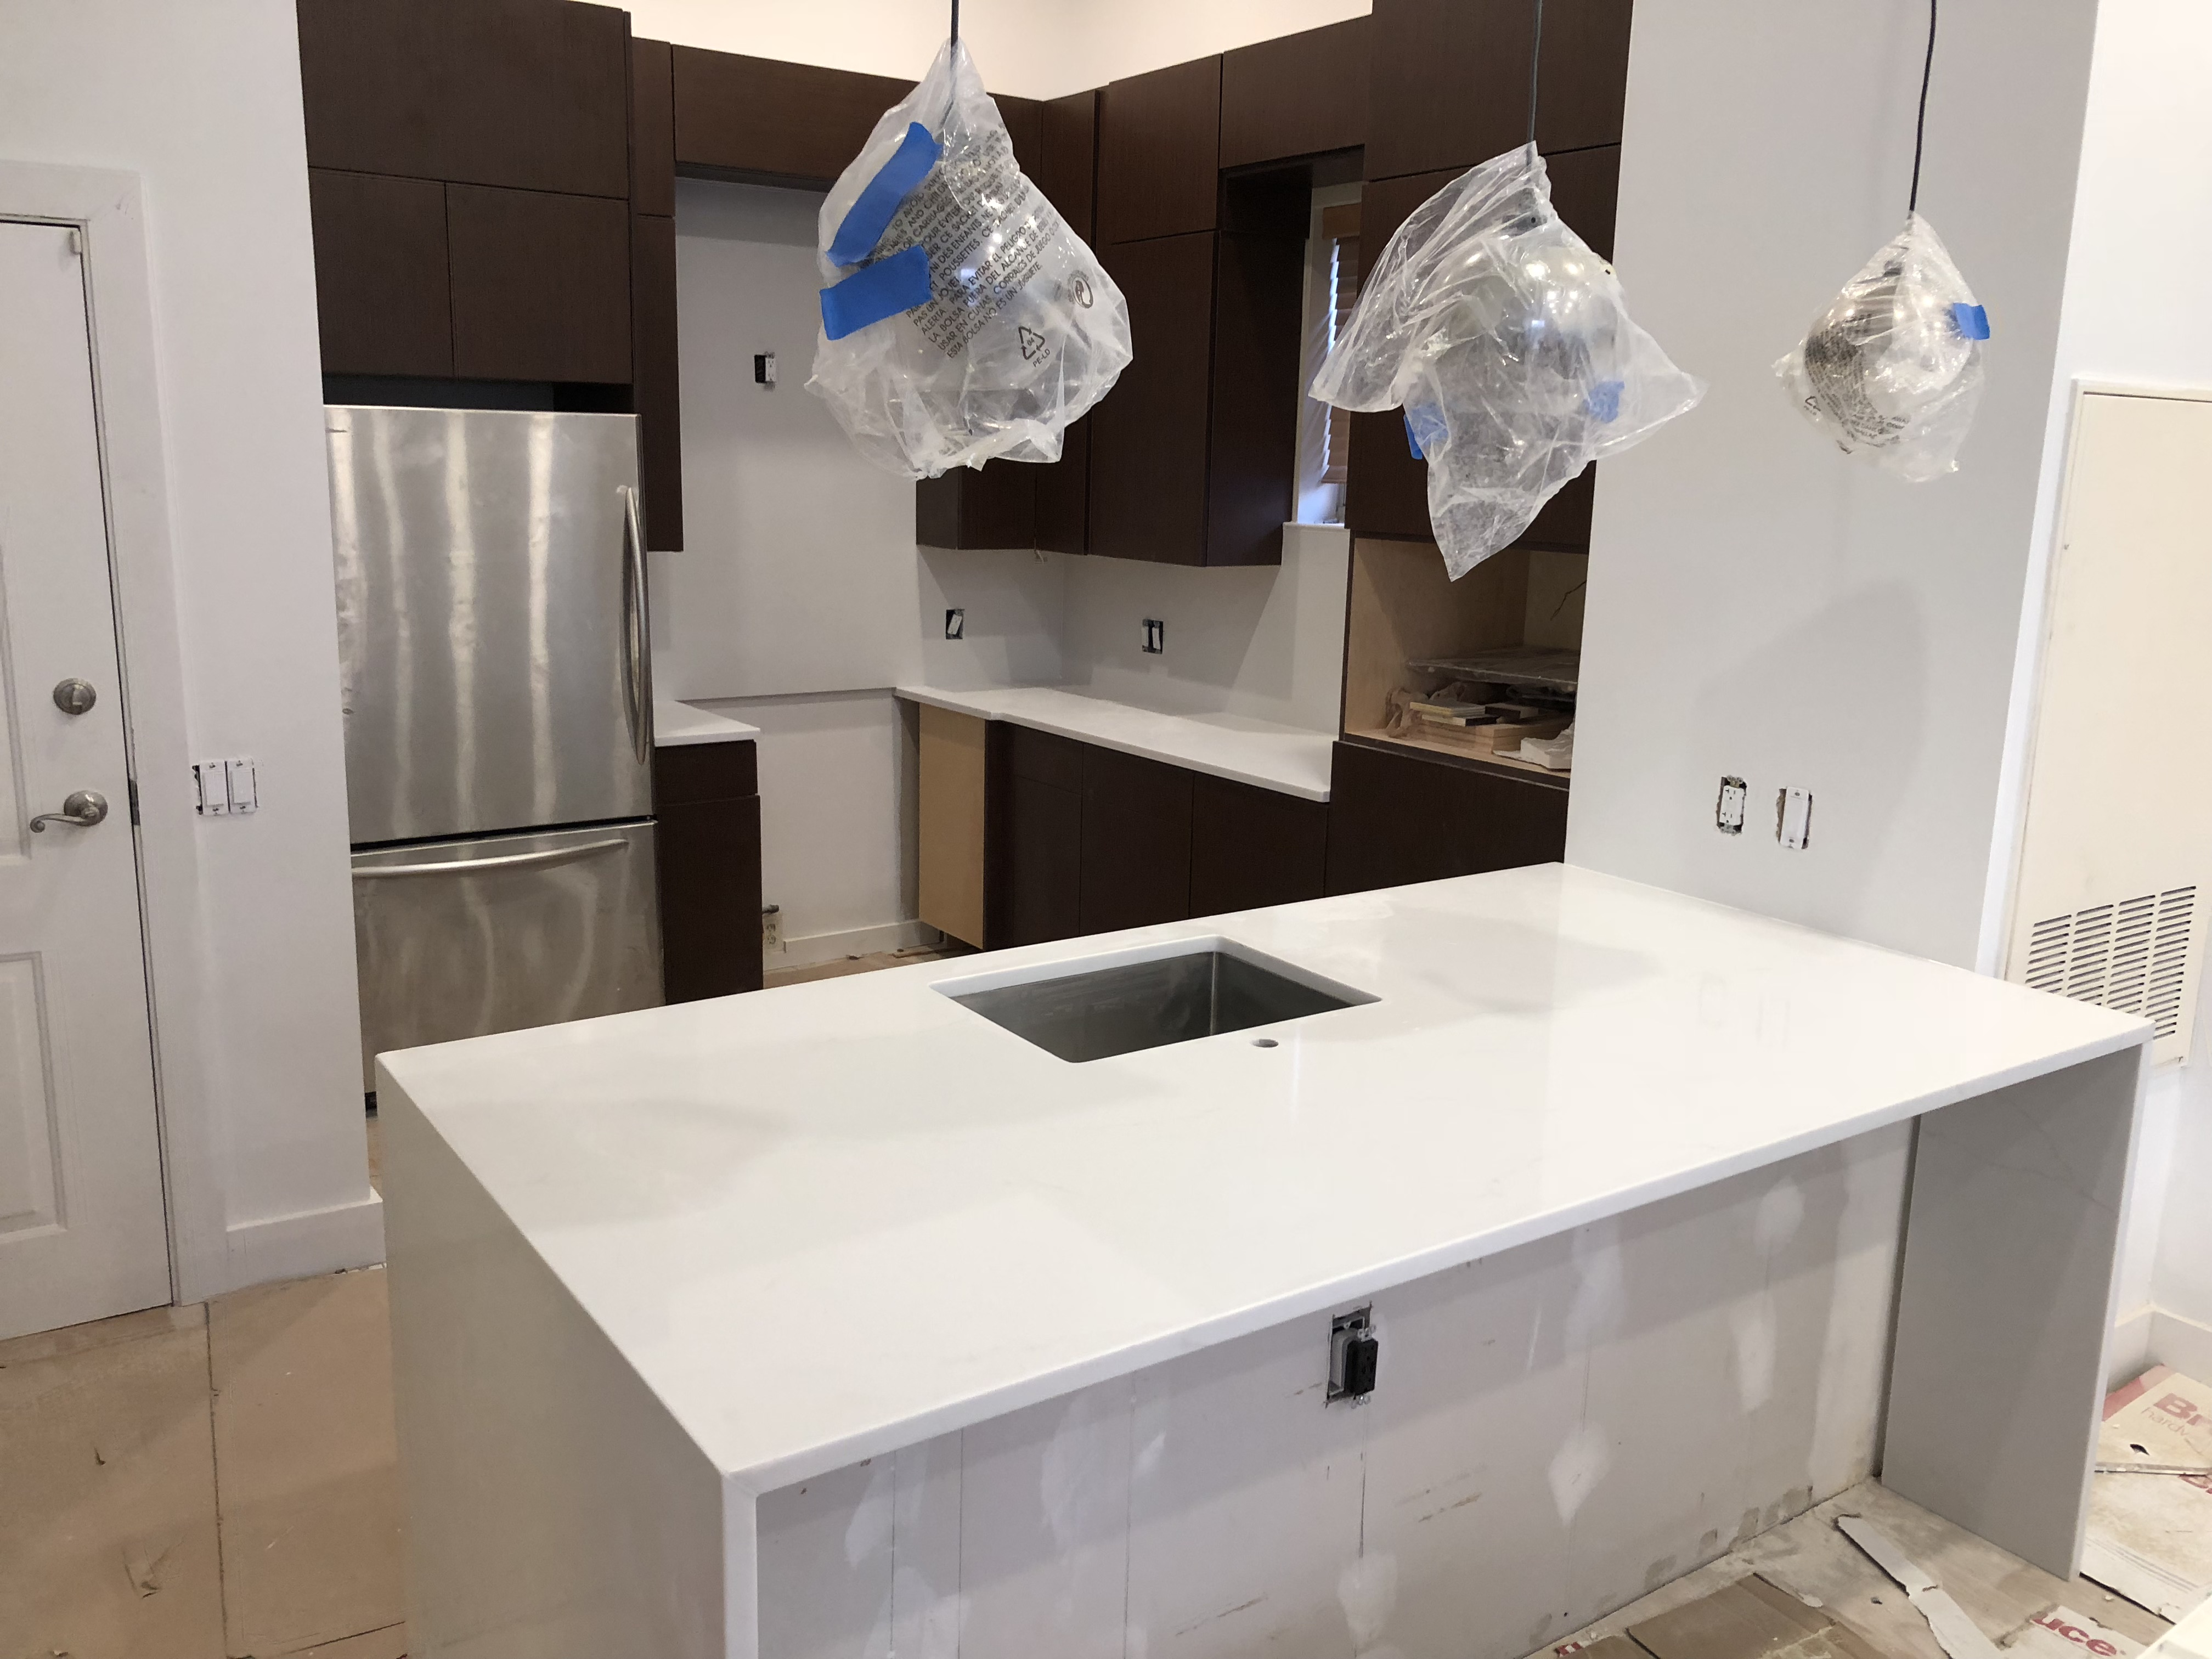 john in decorating island tennessee and s on kitchen shea designer installation ray ideas tips height booth countertop the center expo cabinets executive trends open television install nashville of diy